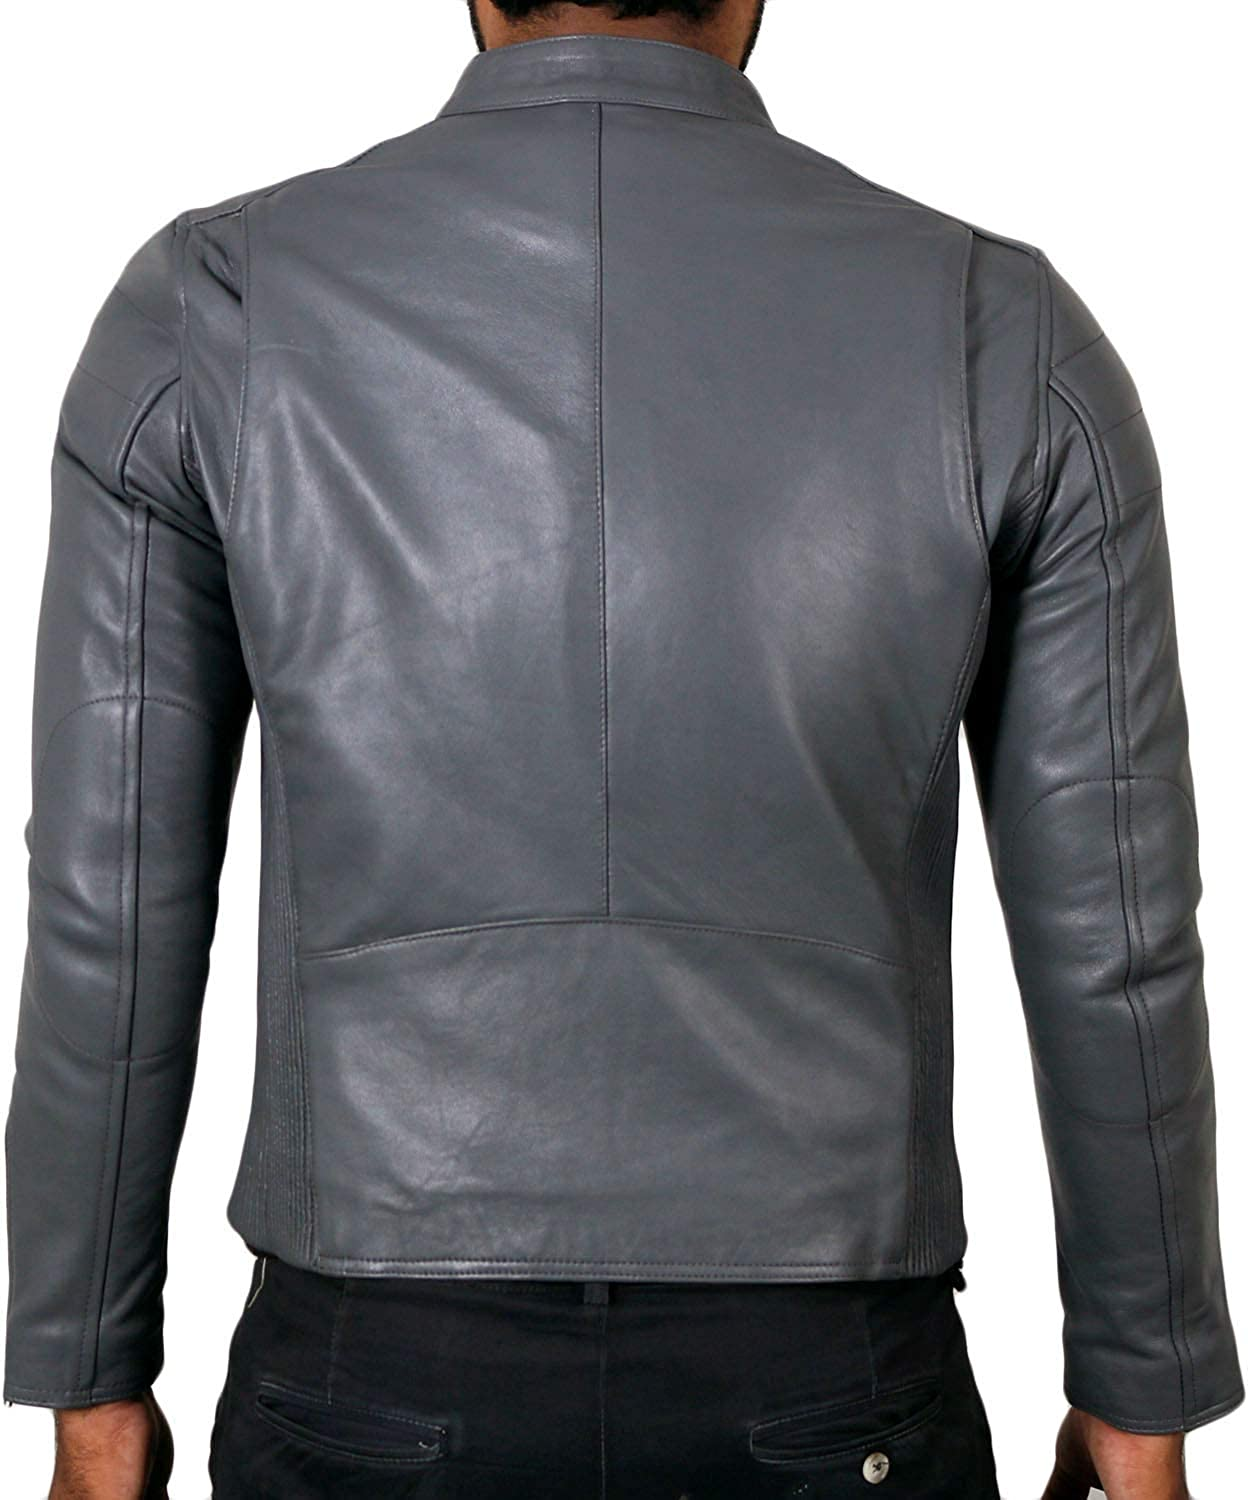 1501008 Laverapelle Mens Genuine Lambskin Leather Jacket Black, Biker Jacket